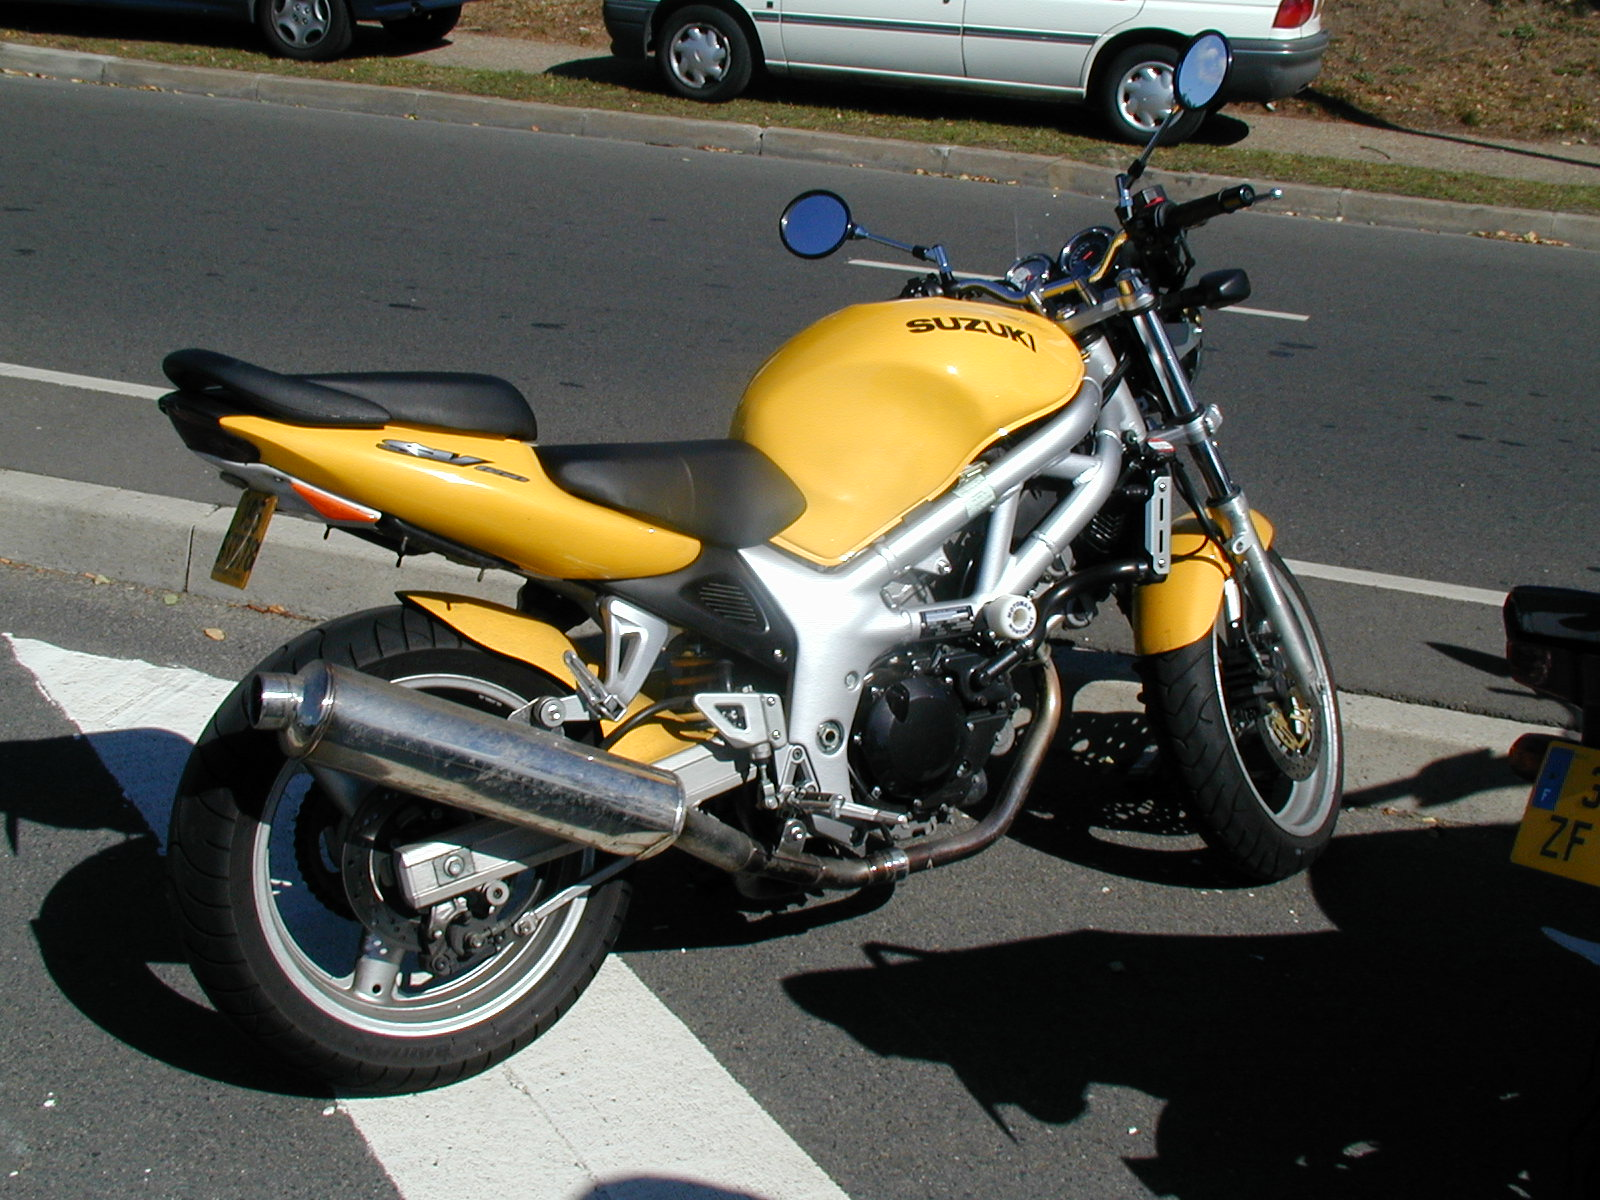 2002 suzuki sv 650 pics specs and information. Black Bedroom Furniture Sets. Home Design Ideas